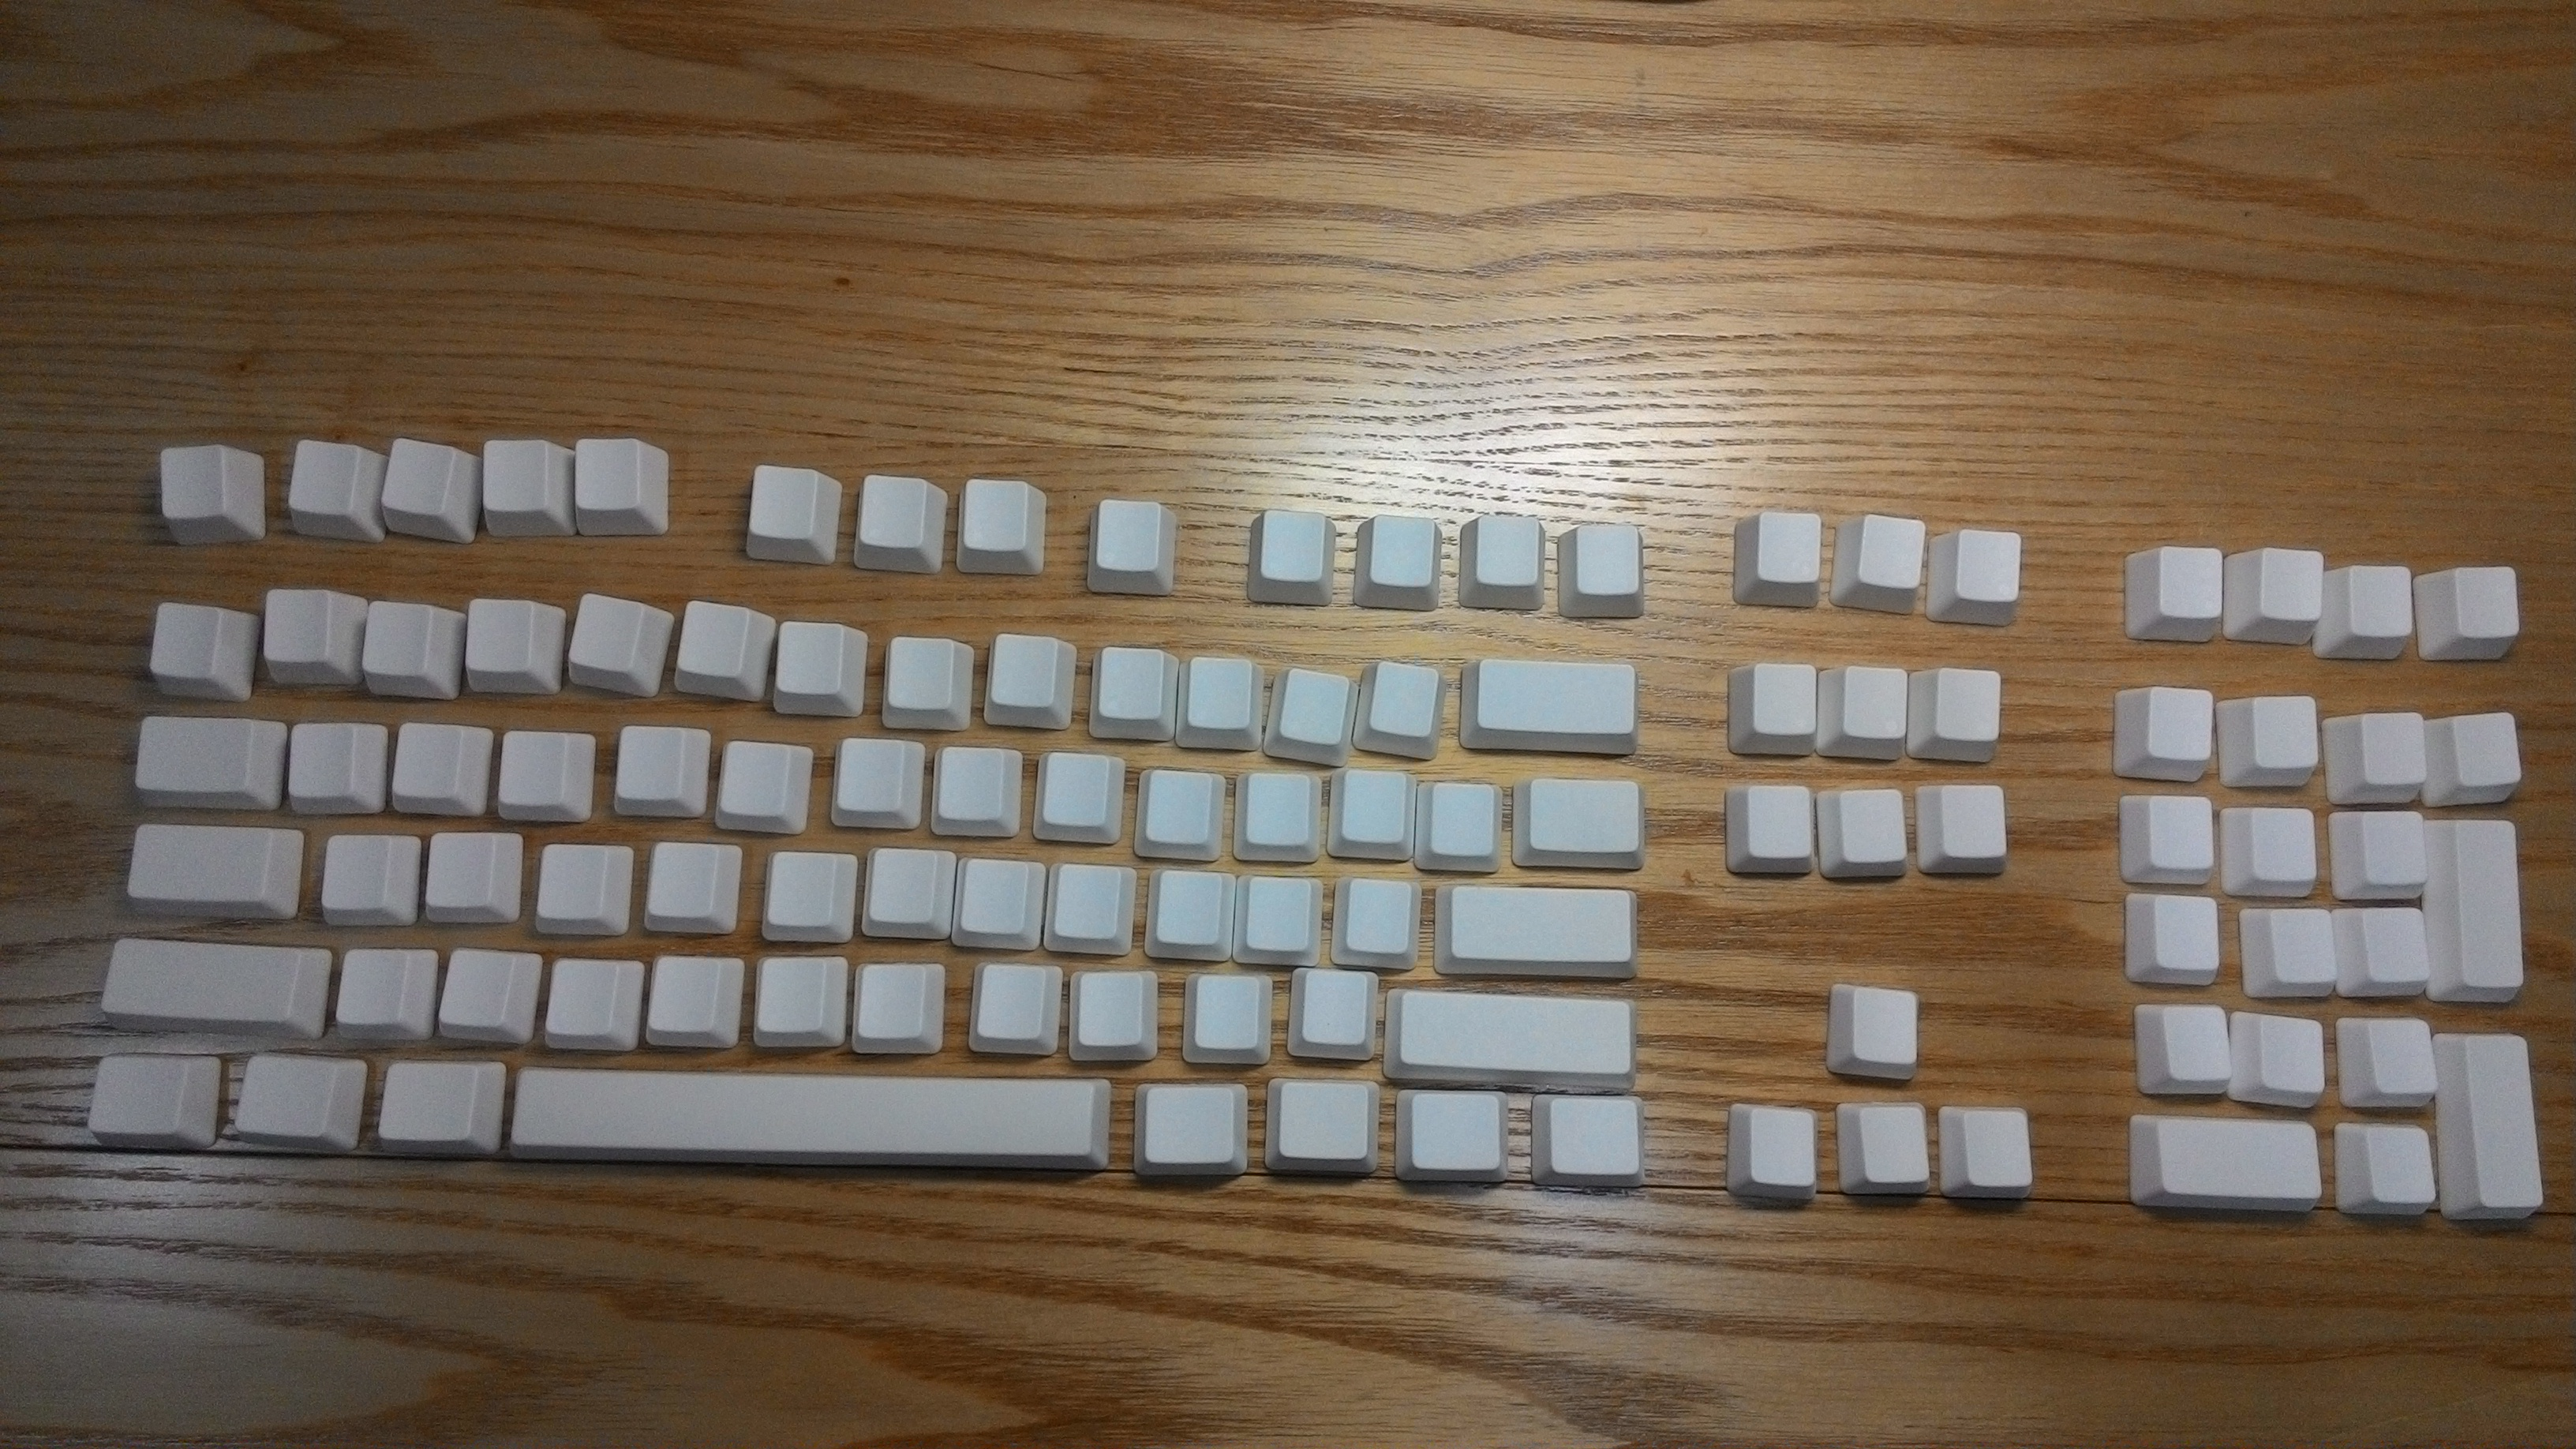 https://github.com/float-tw/float-blog/raw/master/img/pbt-keycap-staining/P_20150501_114034.jpg